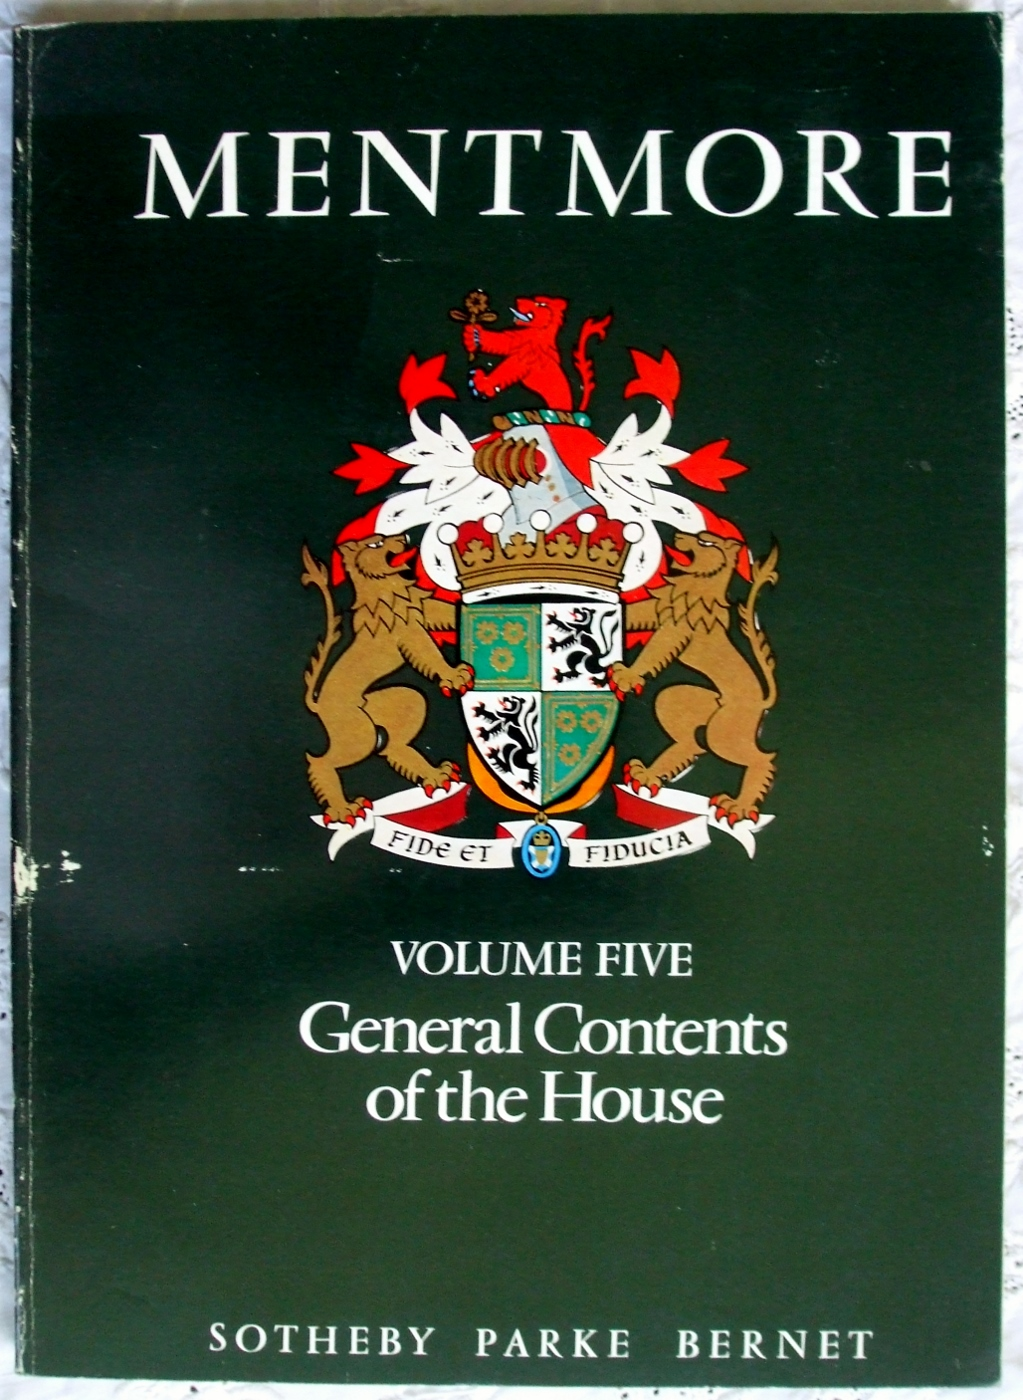 Sothebys Mentmore Volume V 18-19-20 May 1977